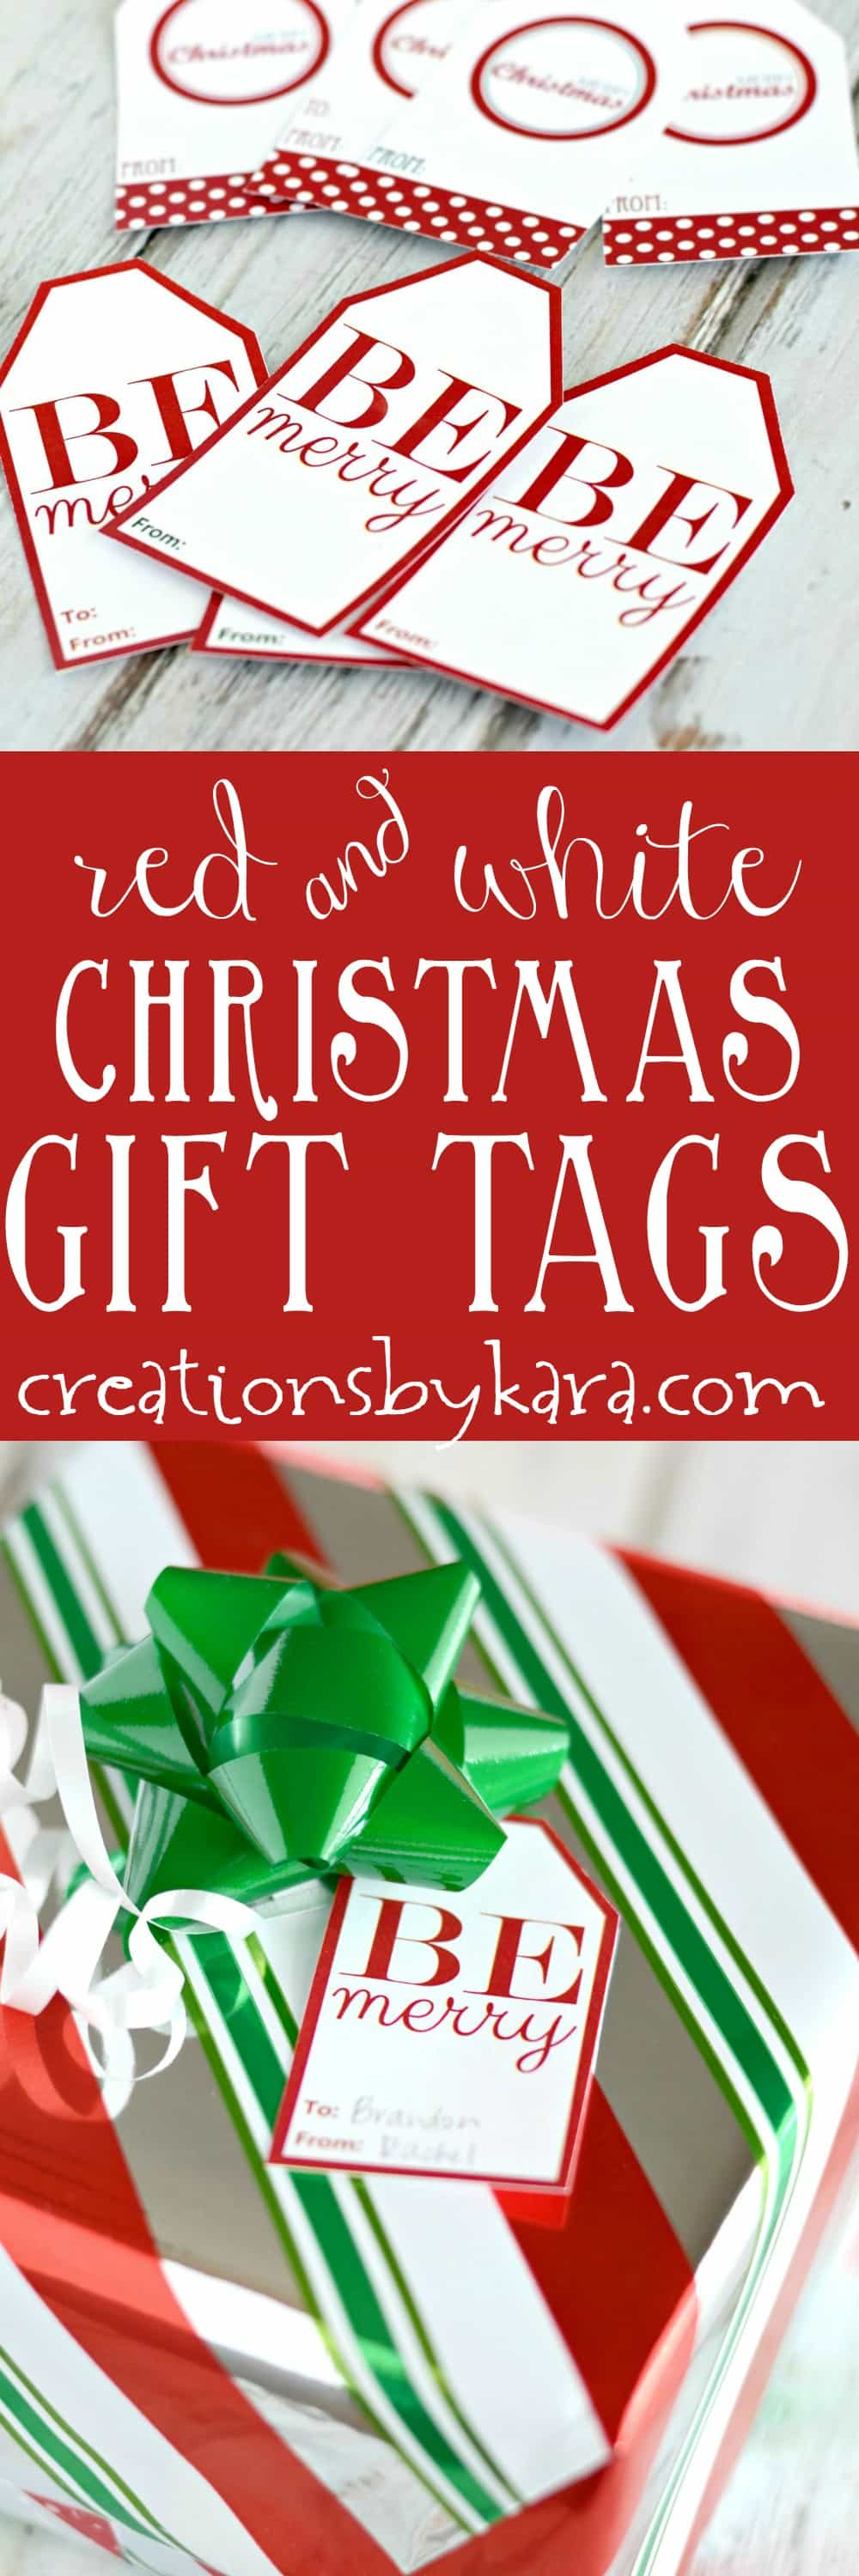 Free printable red and white Christmas gift tags. Add these pretty gift tags to your Christmas packages.